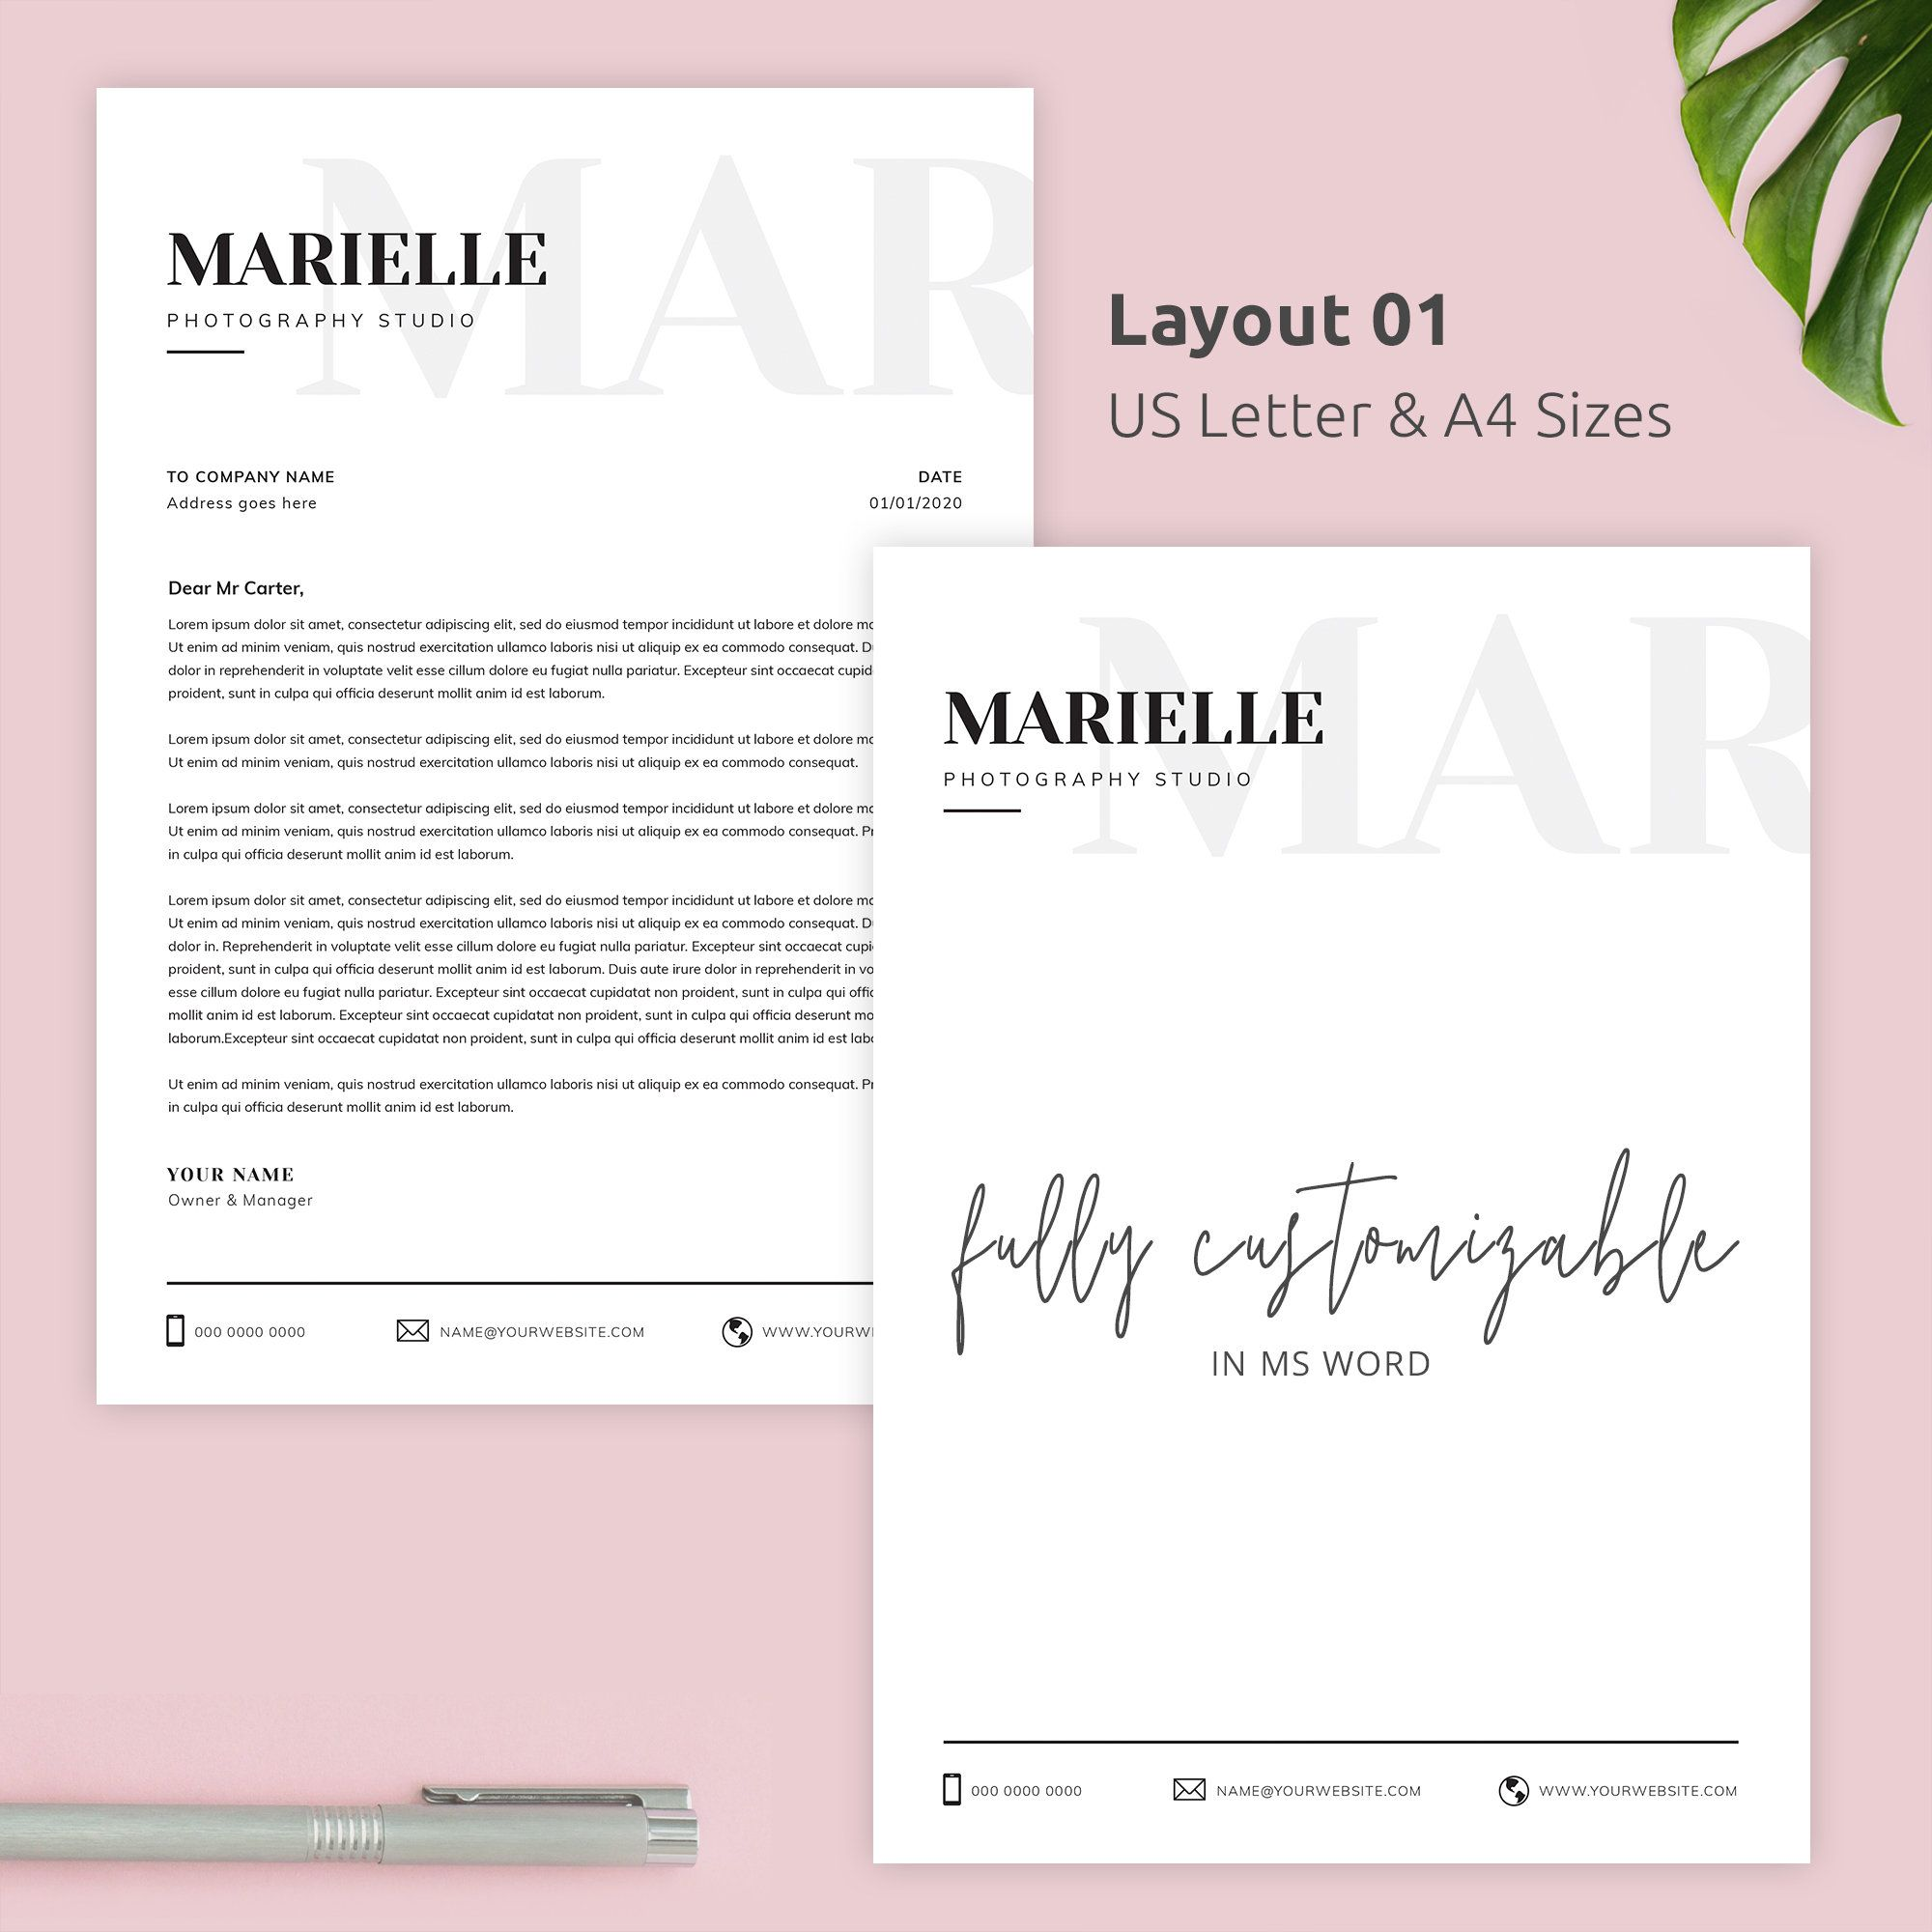 letterhead template ms word, minimalist letter cv sample for hotel job accounts payable manager resume entry level medical receptionist objective